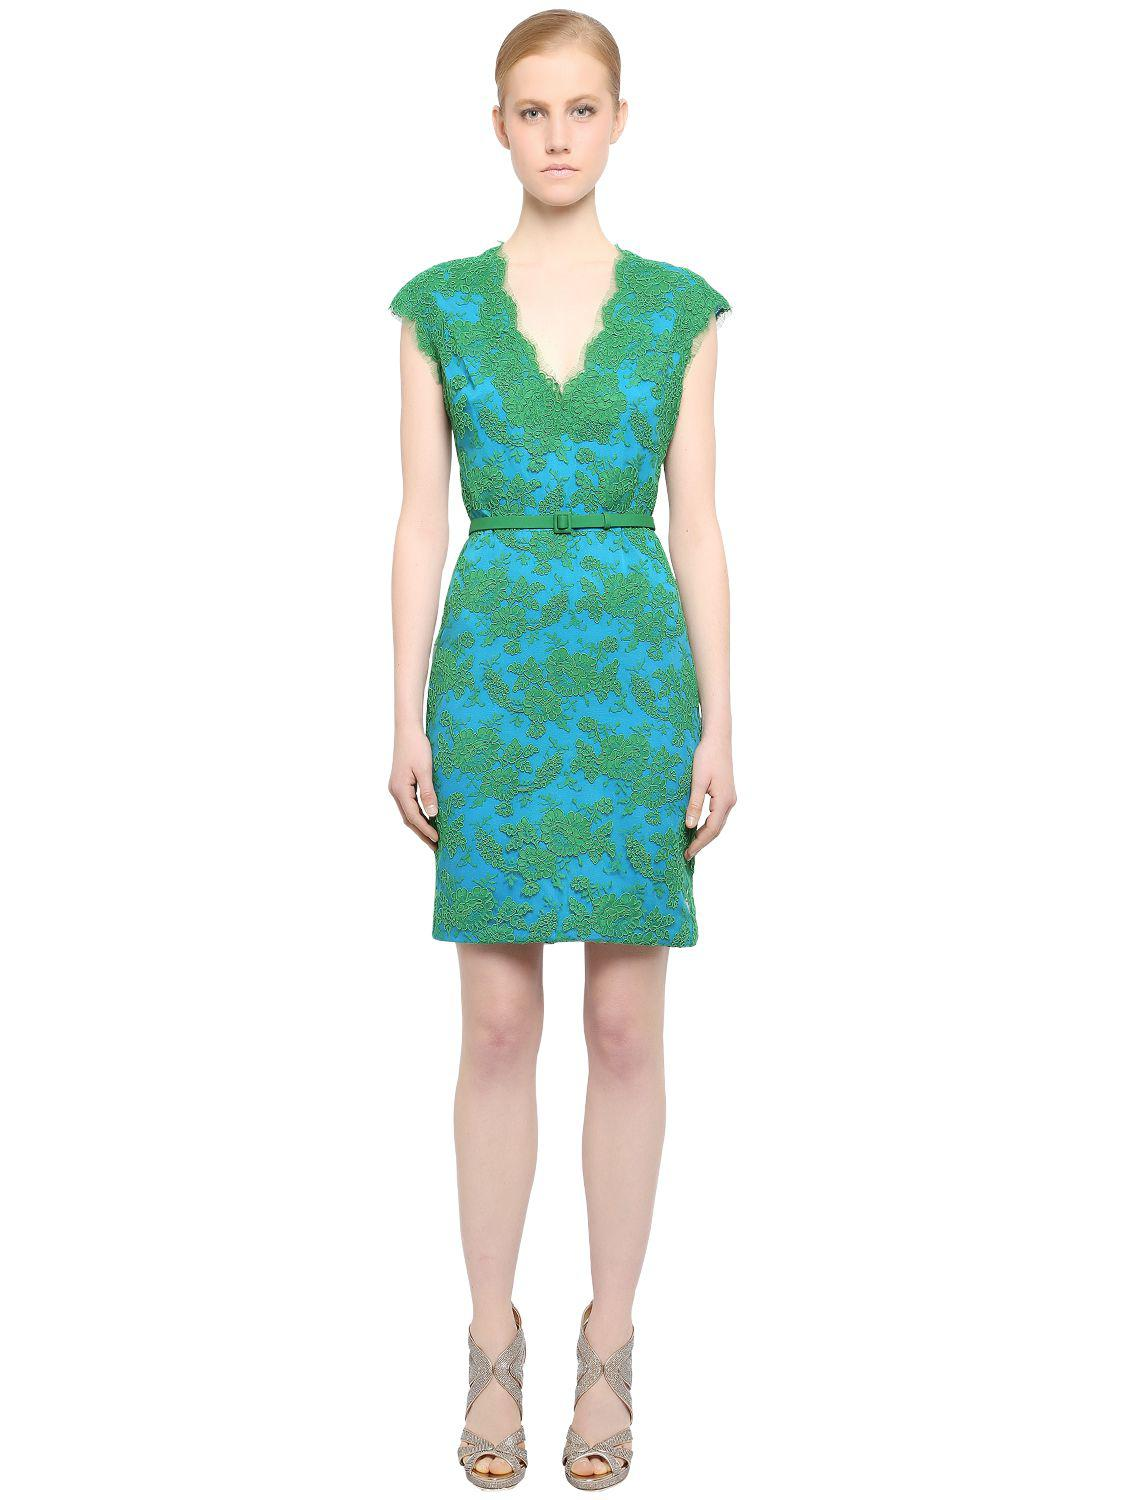 Lyst - Reem Acra Embellished Cotton & Viscose Lace Dress in Green